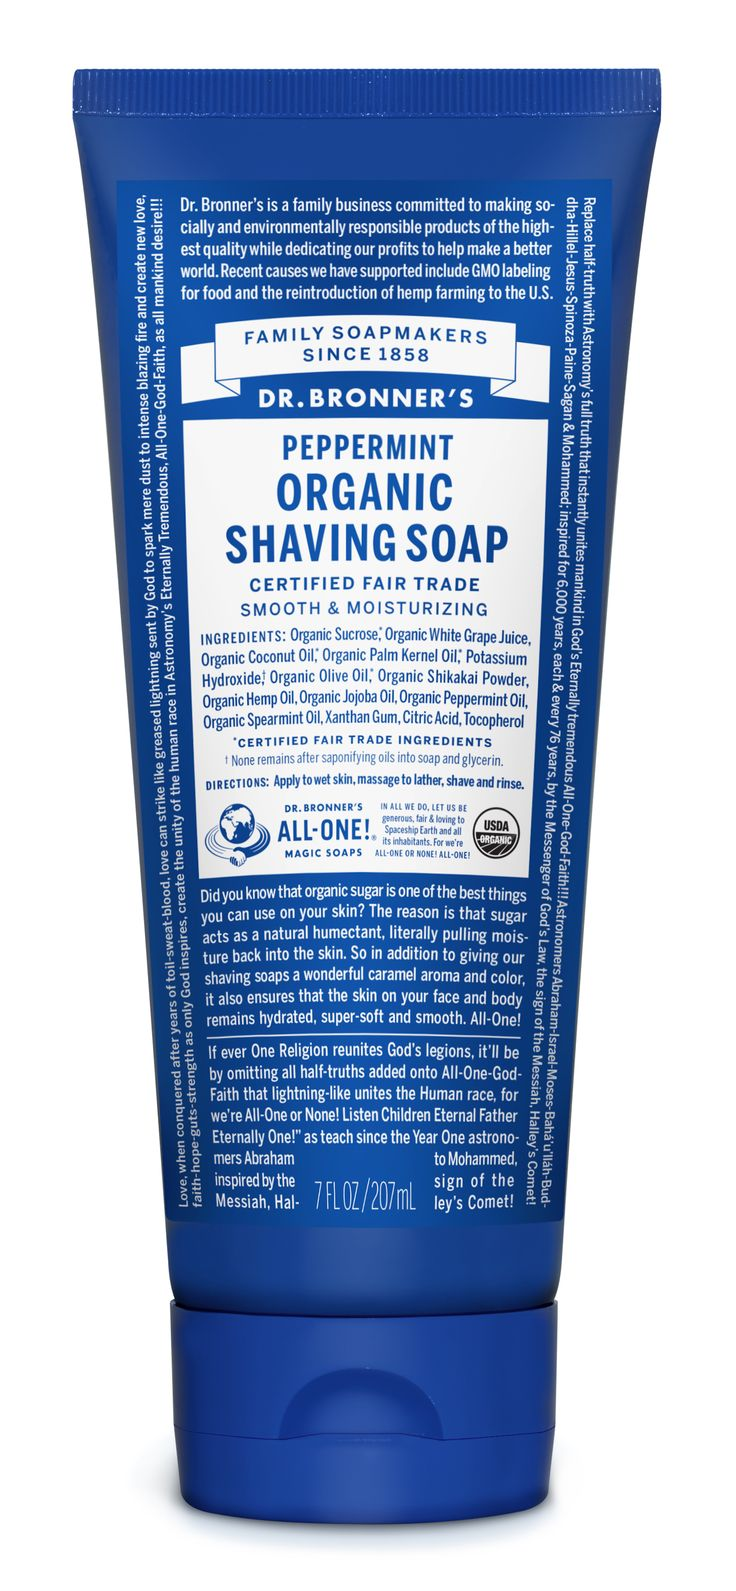 Dr. Bronner's Peppermint Organic Shaving Soap: Get a close, comfortable shave with organic ingredients that nourish and cleanse the skin! Like organic shikakai powder from India, used there for centuries on hair and body. And fair trade & organic sugar from Paraguay, giving our Shaving Soaps a delightful caramel color and aroma, moisturizing and soothing naturally.